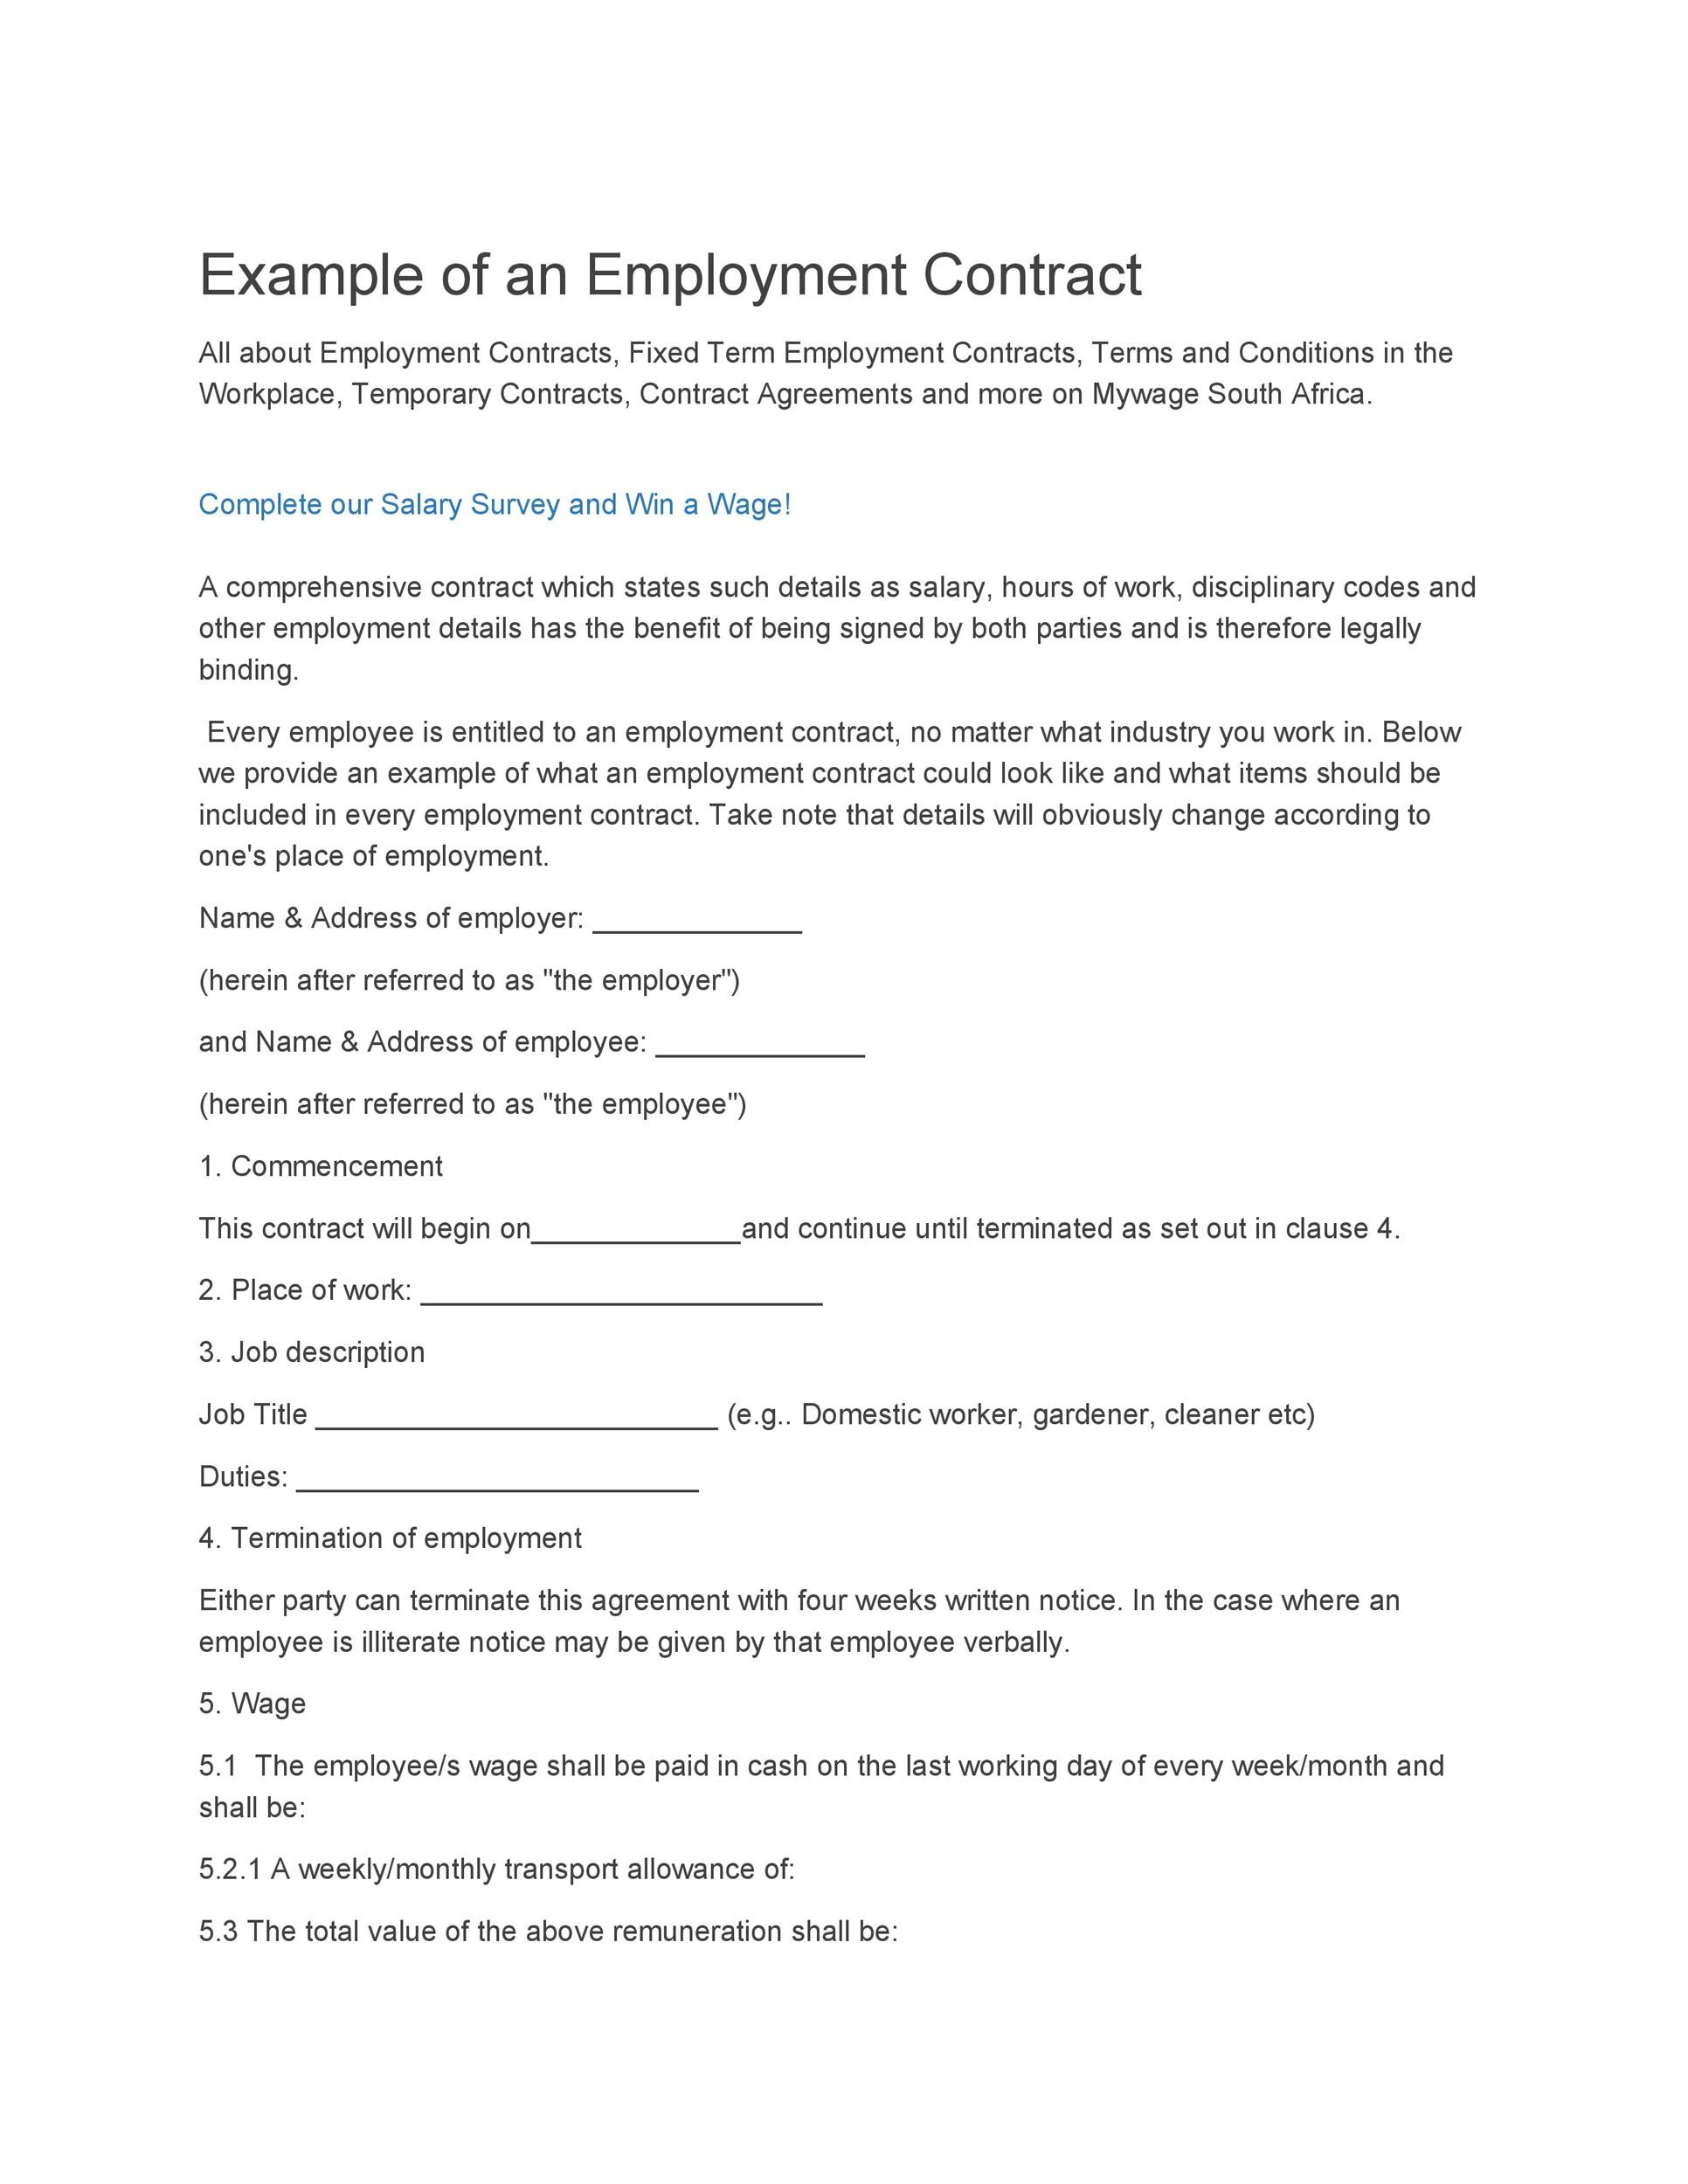 Gratifying image with regard to free printable employment contracts